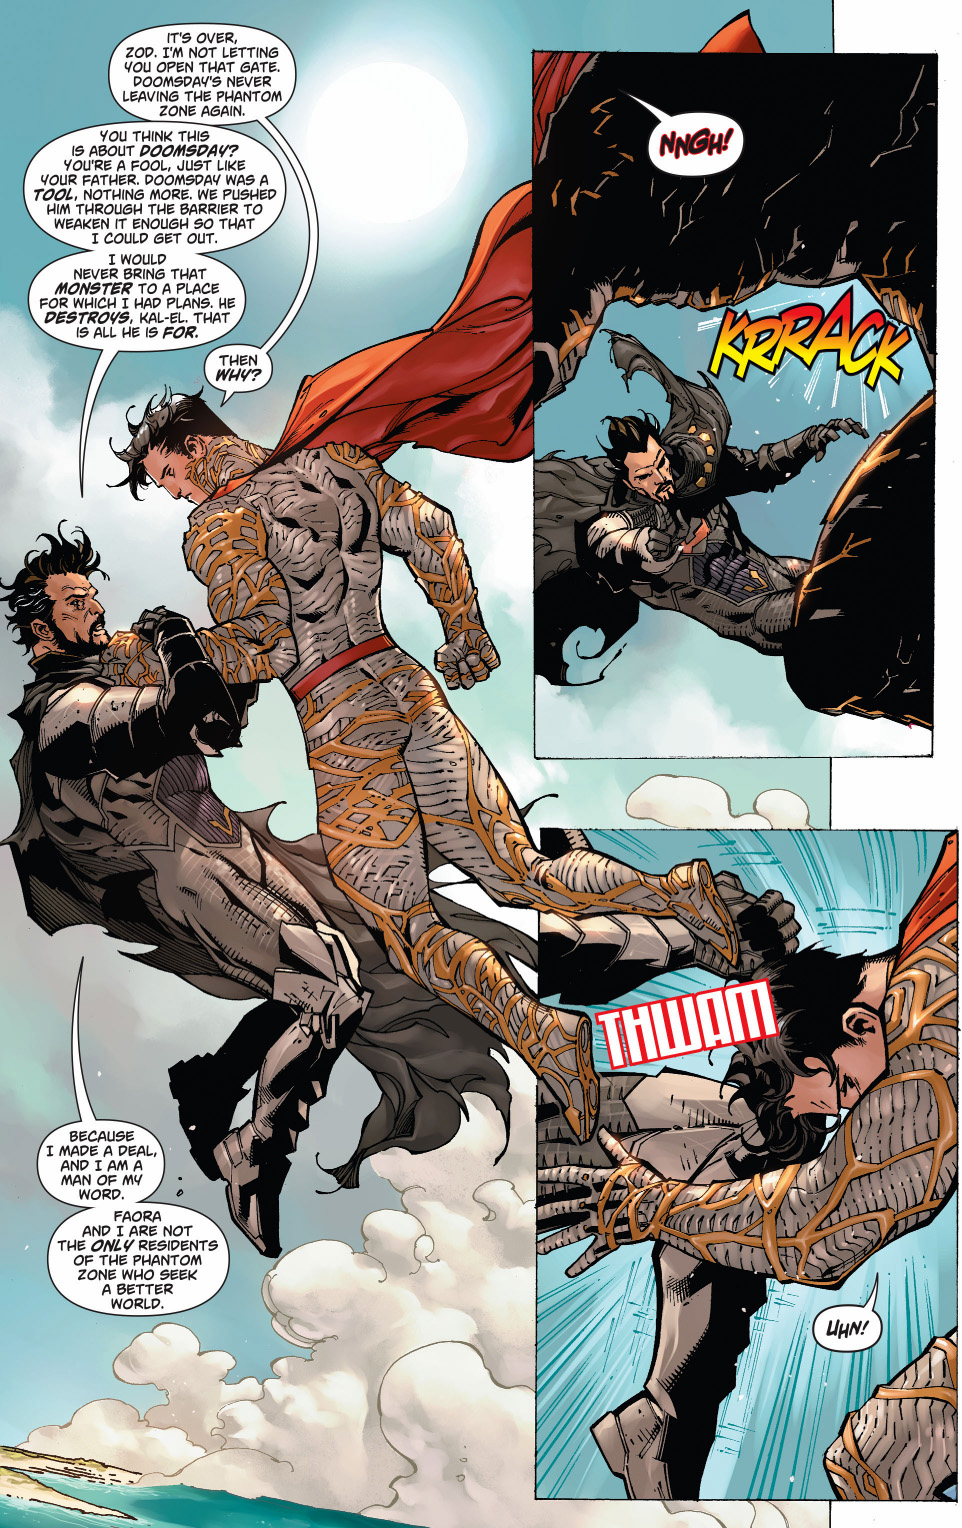 Superman And Wonder Woman Vs Zod And Faora  Comicnewbies-5021